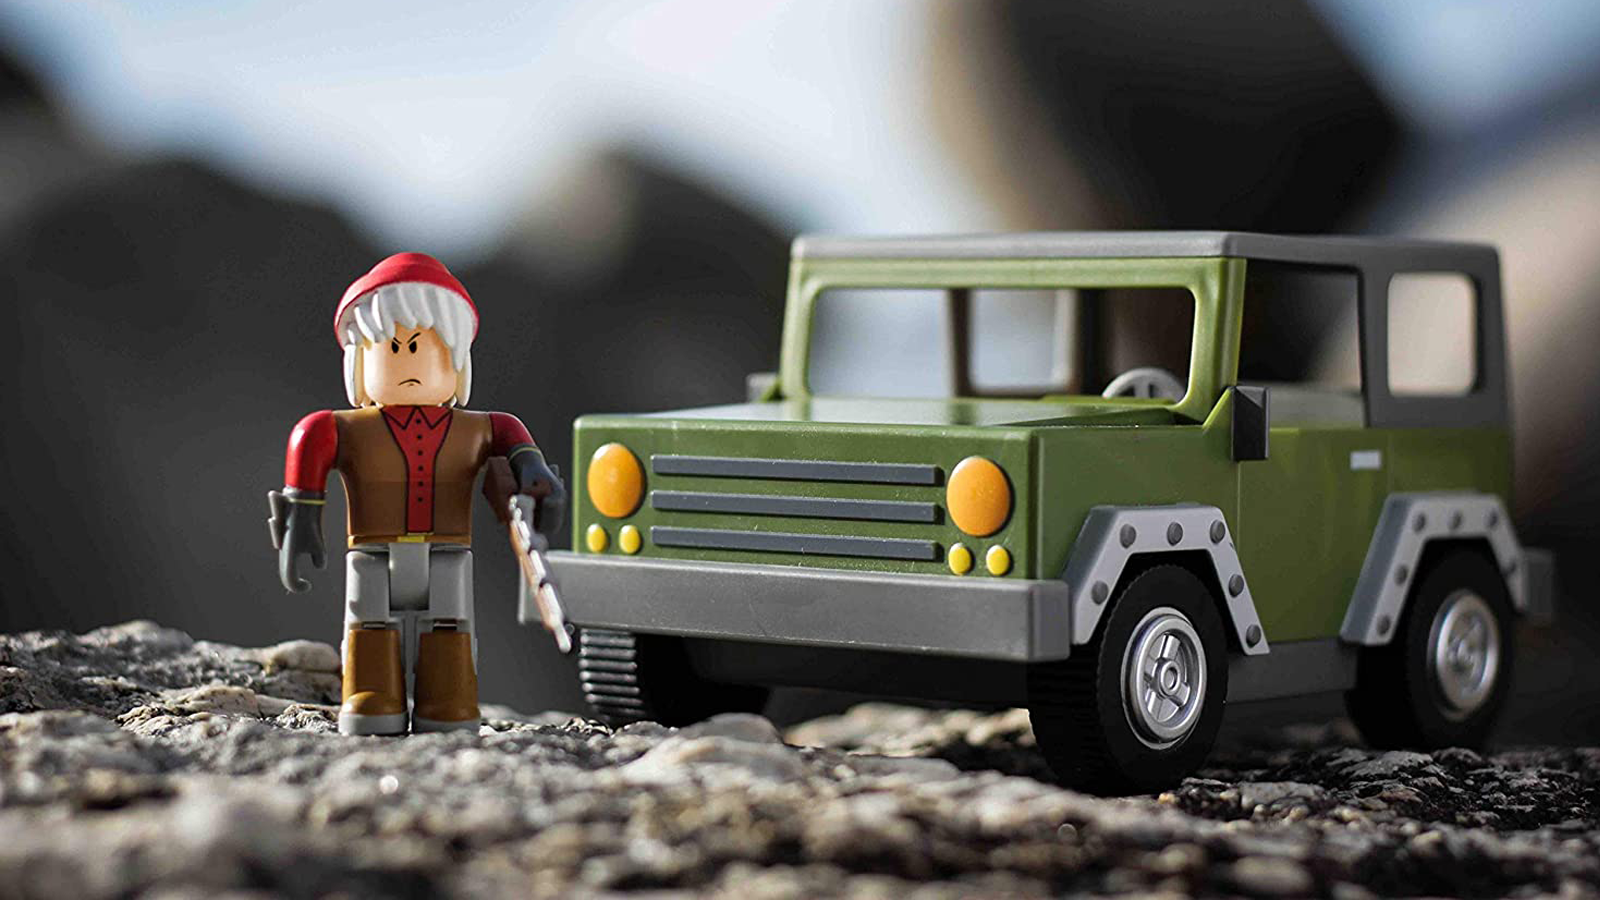 """A """"Roblox"""" Apocalypse Rising 4x4 vehicle and action figure."""